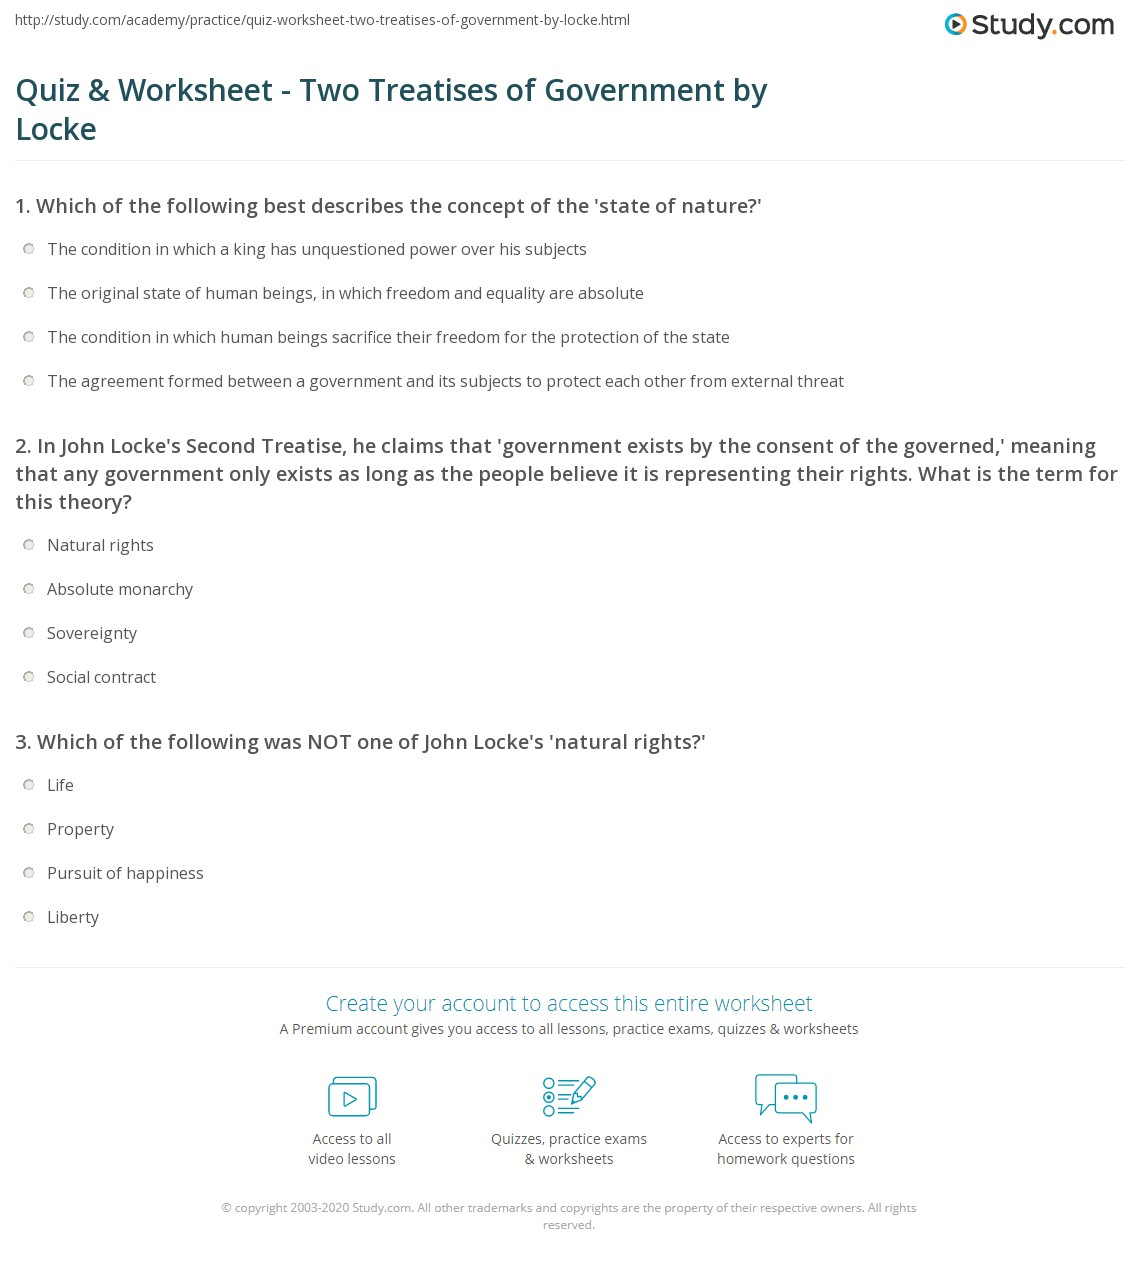 Worksheets Declaration Of Independence Worksheets quiz worksheet two treatises of government by locke study com 1 in john lockes second treatise he claims that exists the consent governed meaning any government